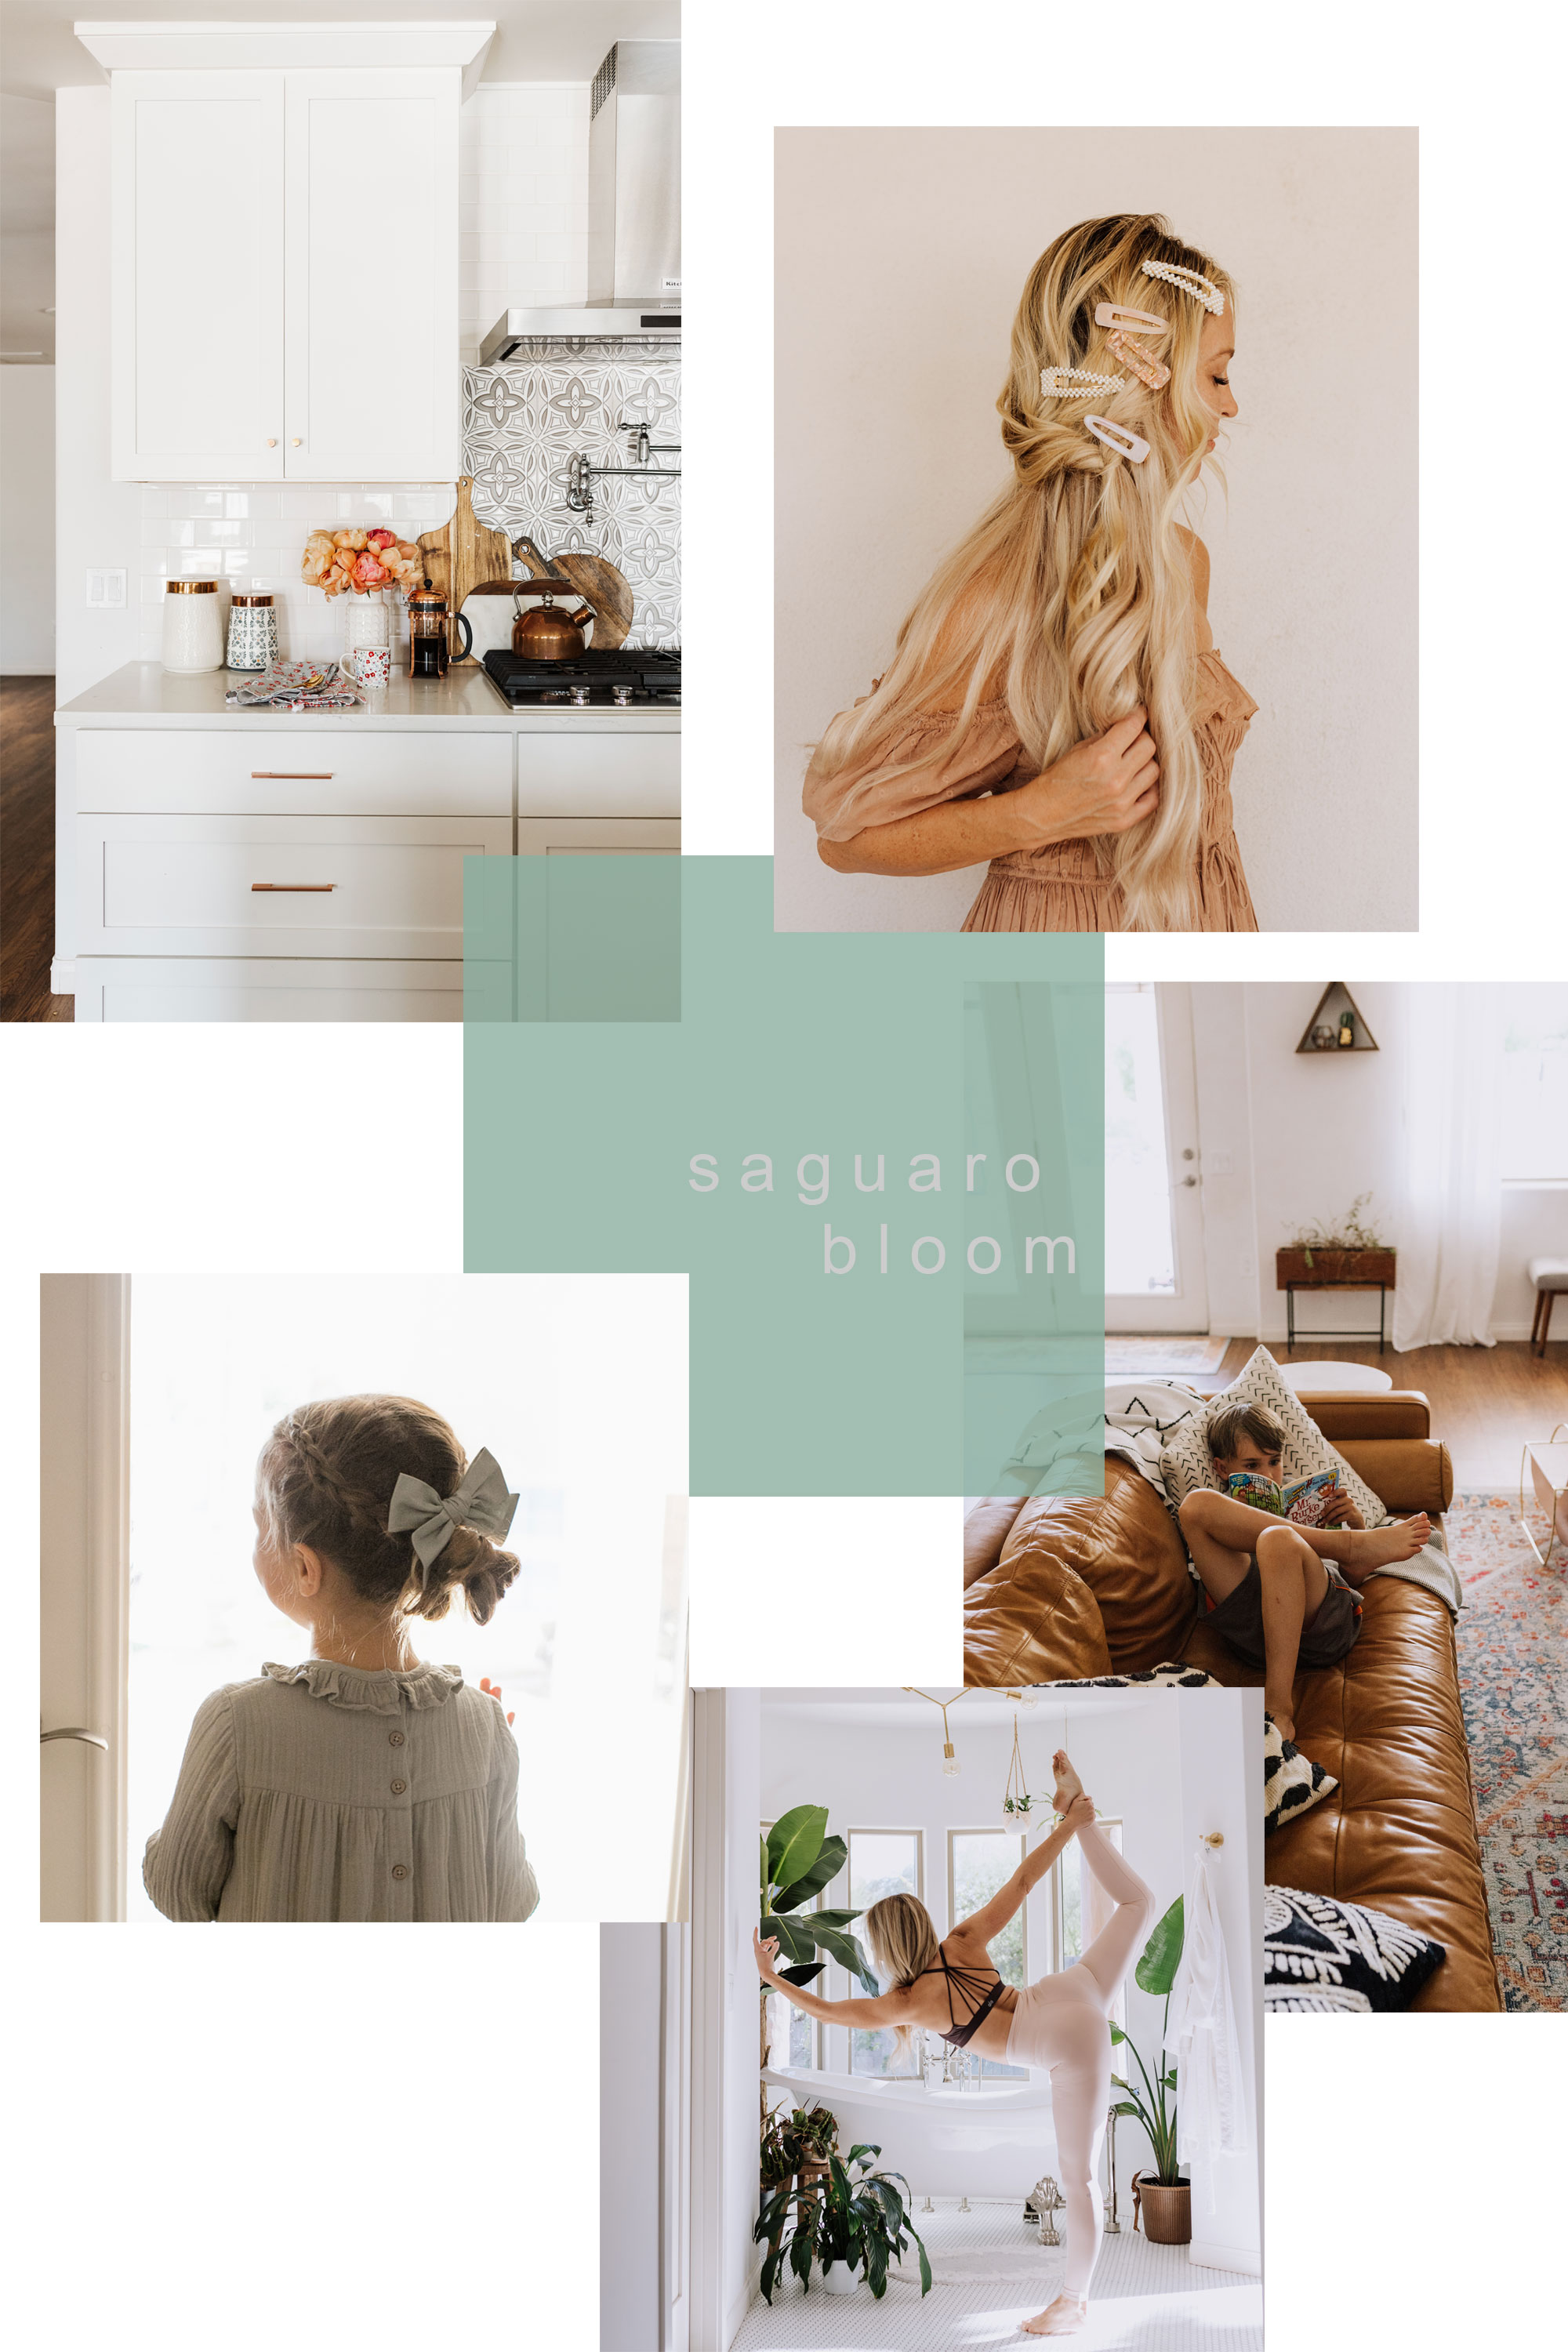 Saguro-Bloom-images